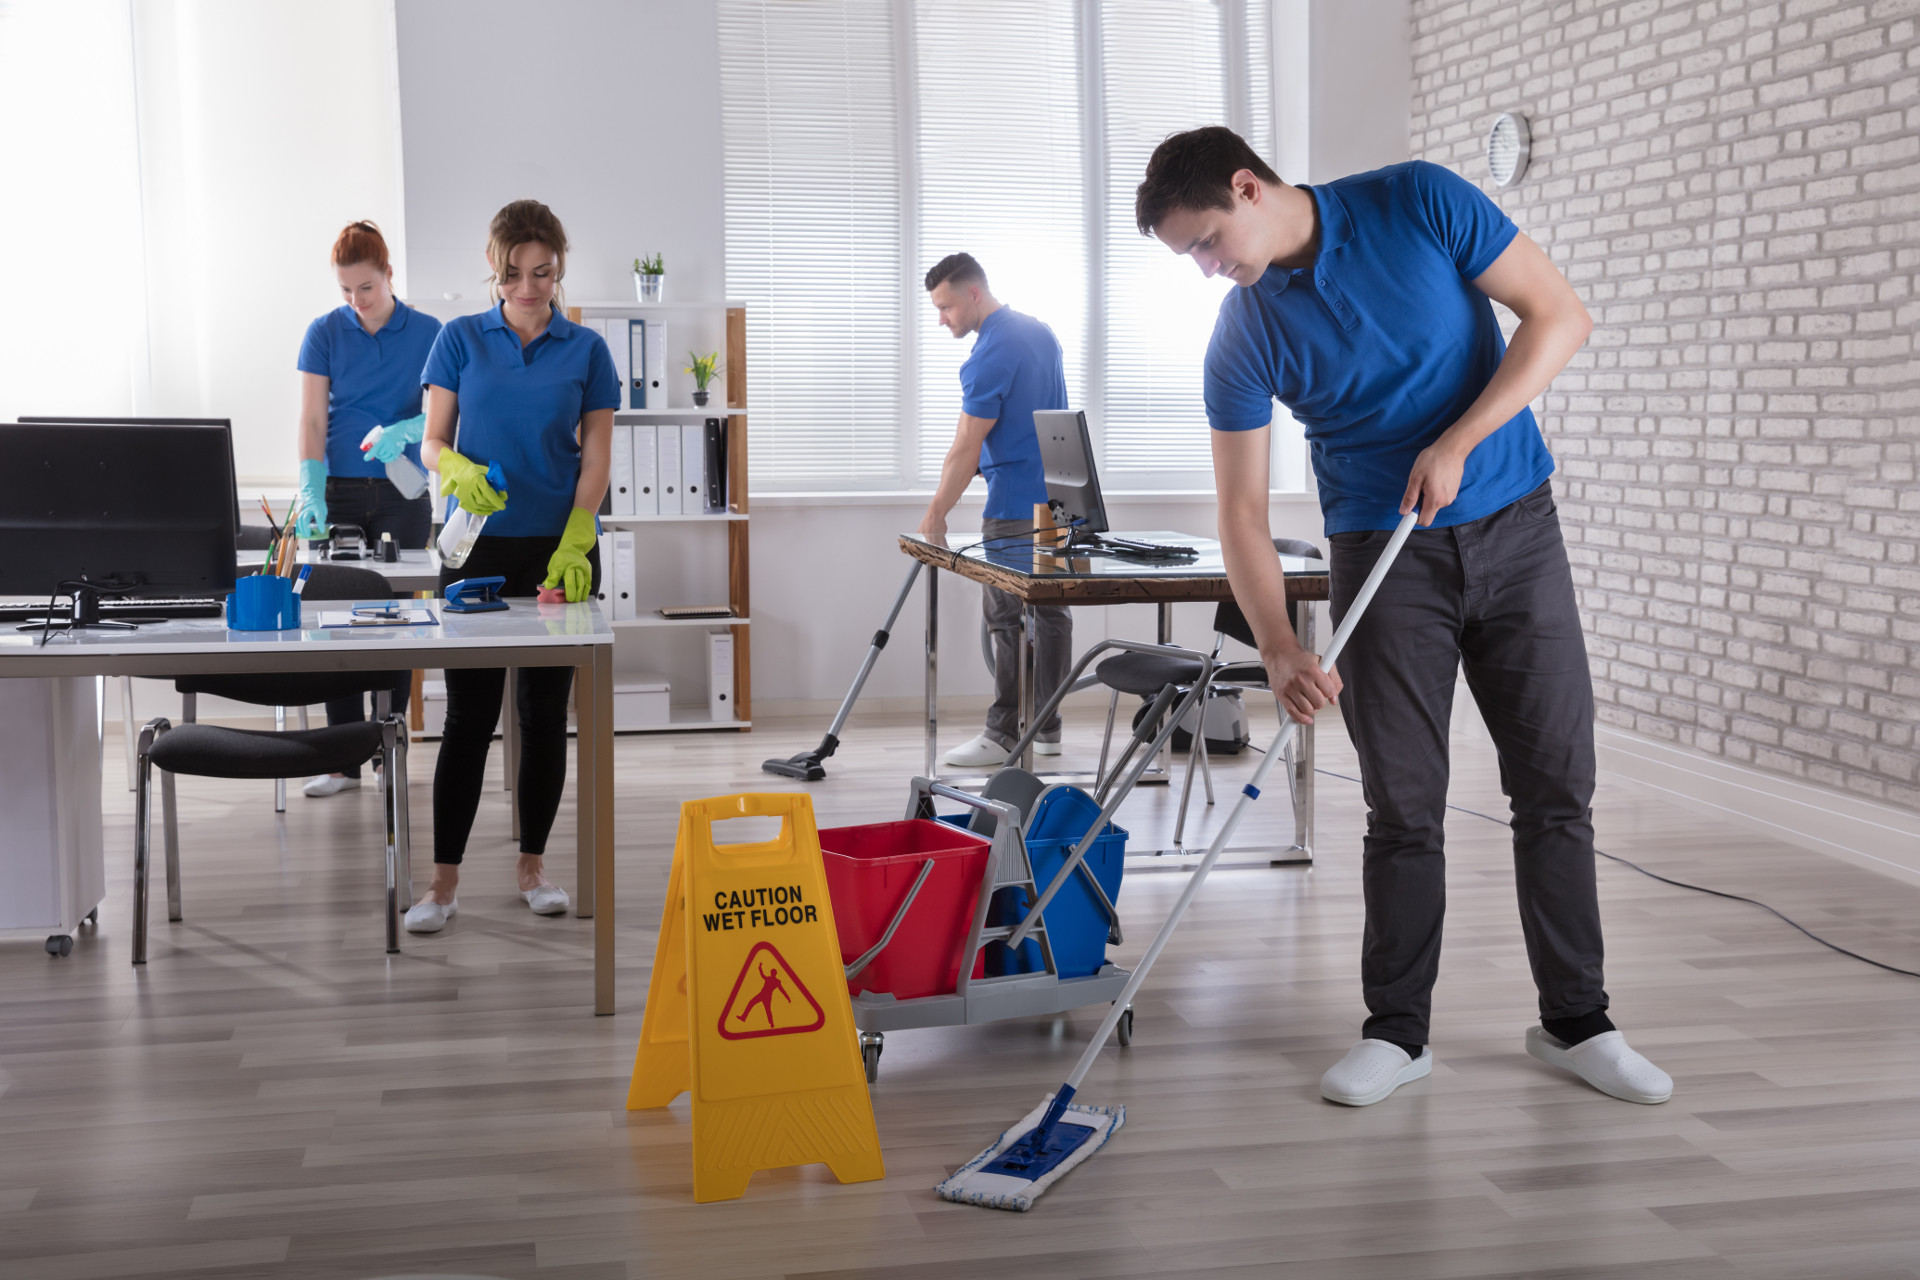 commercial cleaning businesses